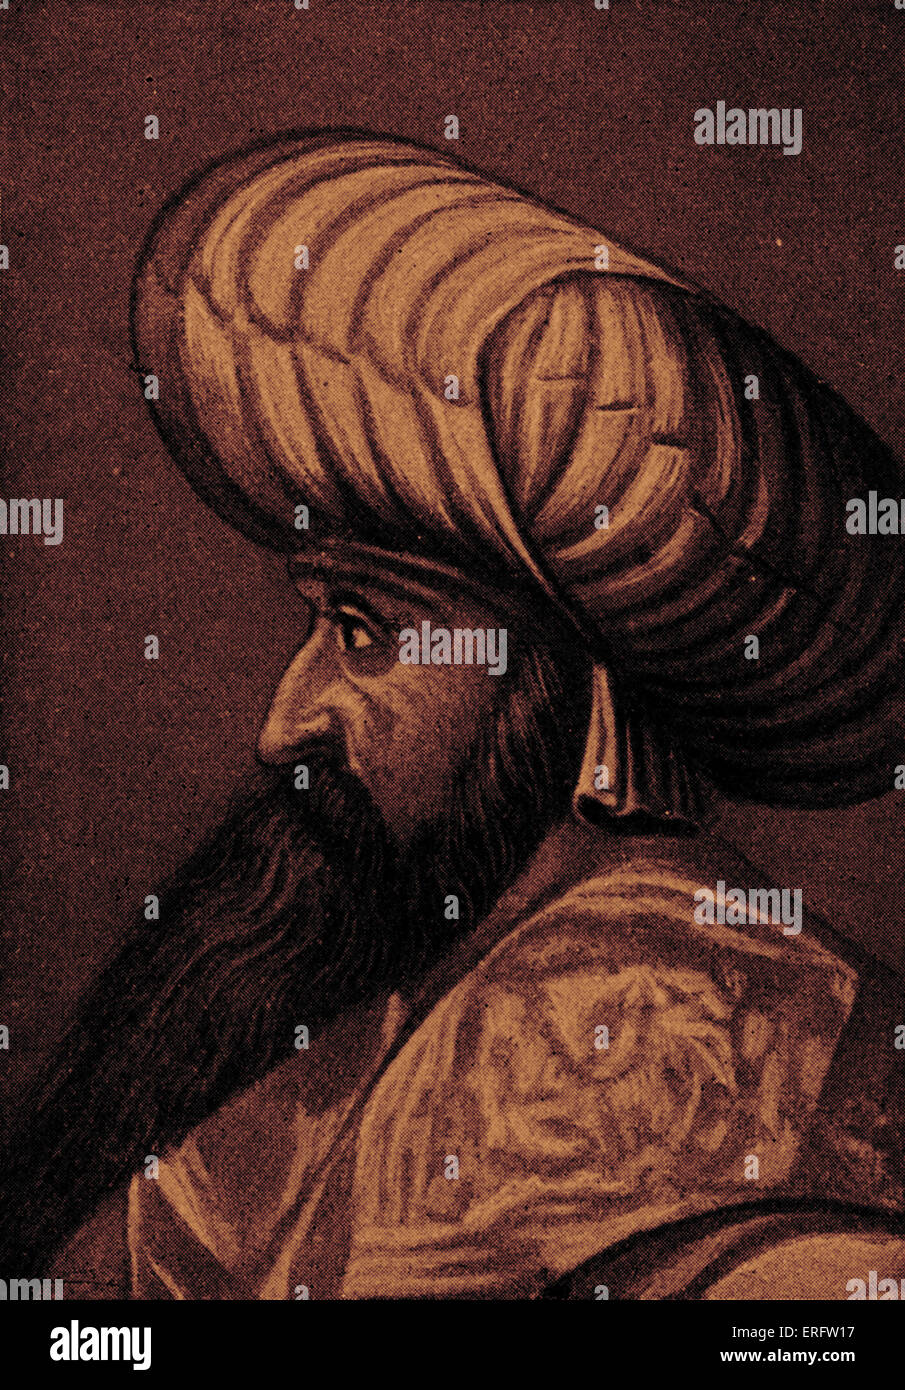 Sultan Bajesid I, also known as Bayezid I - portrait  Reign: 1389- 1402 - Stock Image